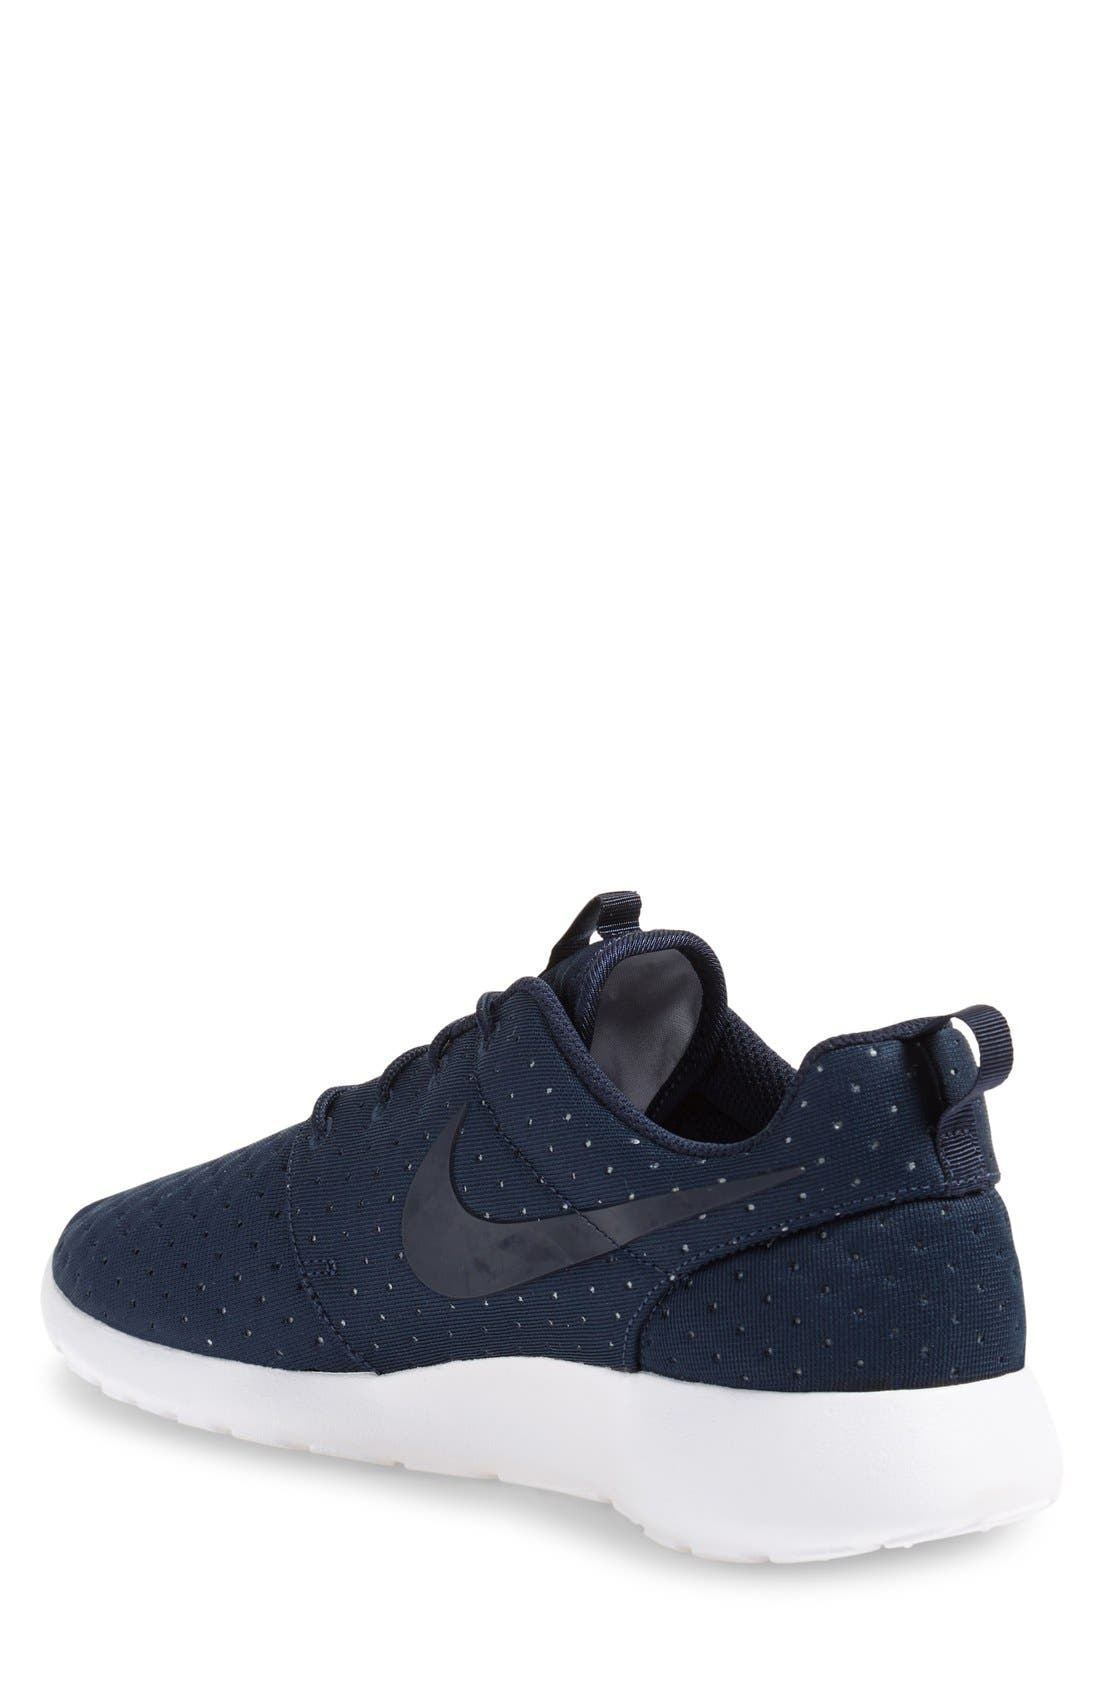 Alternate Image 2  - Nike 'Roshe One SE' Sneaker (Men)